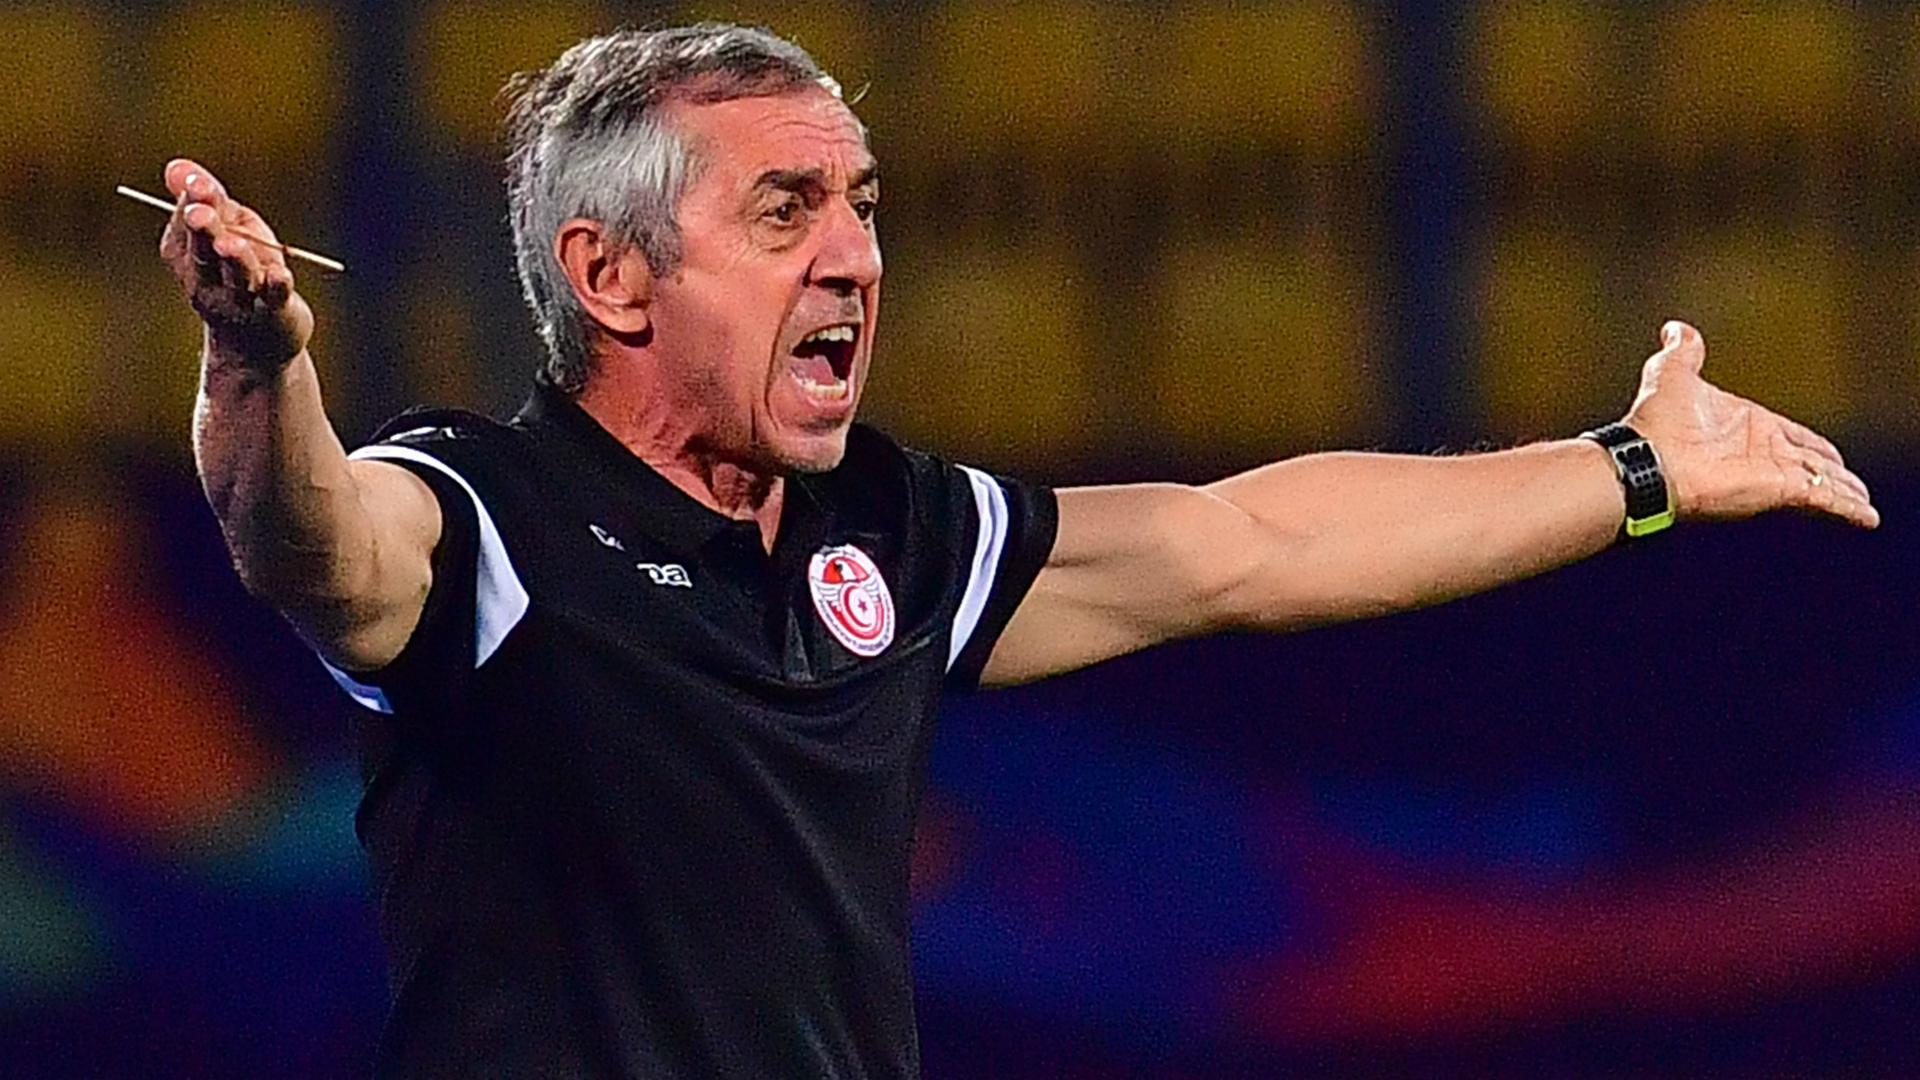 Afcon 2019: Tunisia rediscovered a certain level against Ghana - Giresse